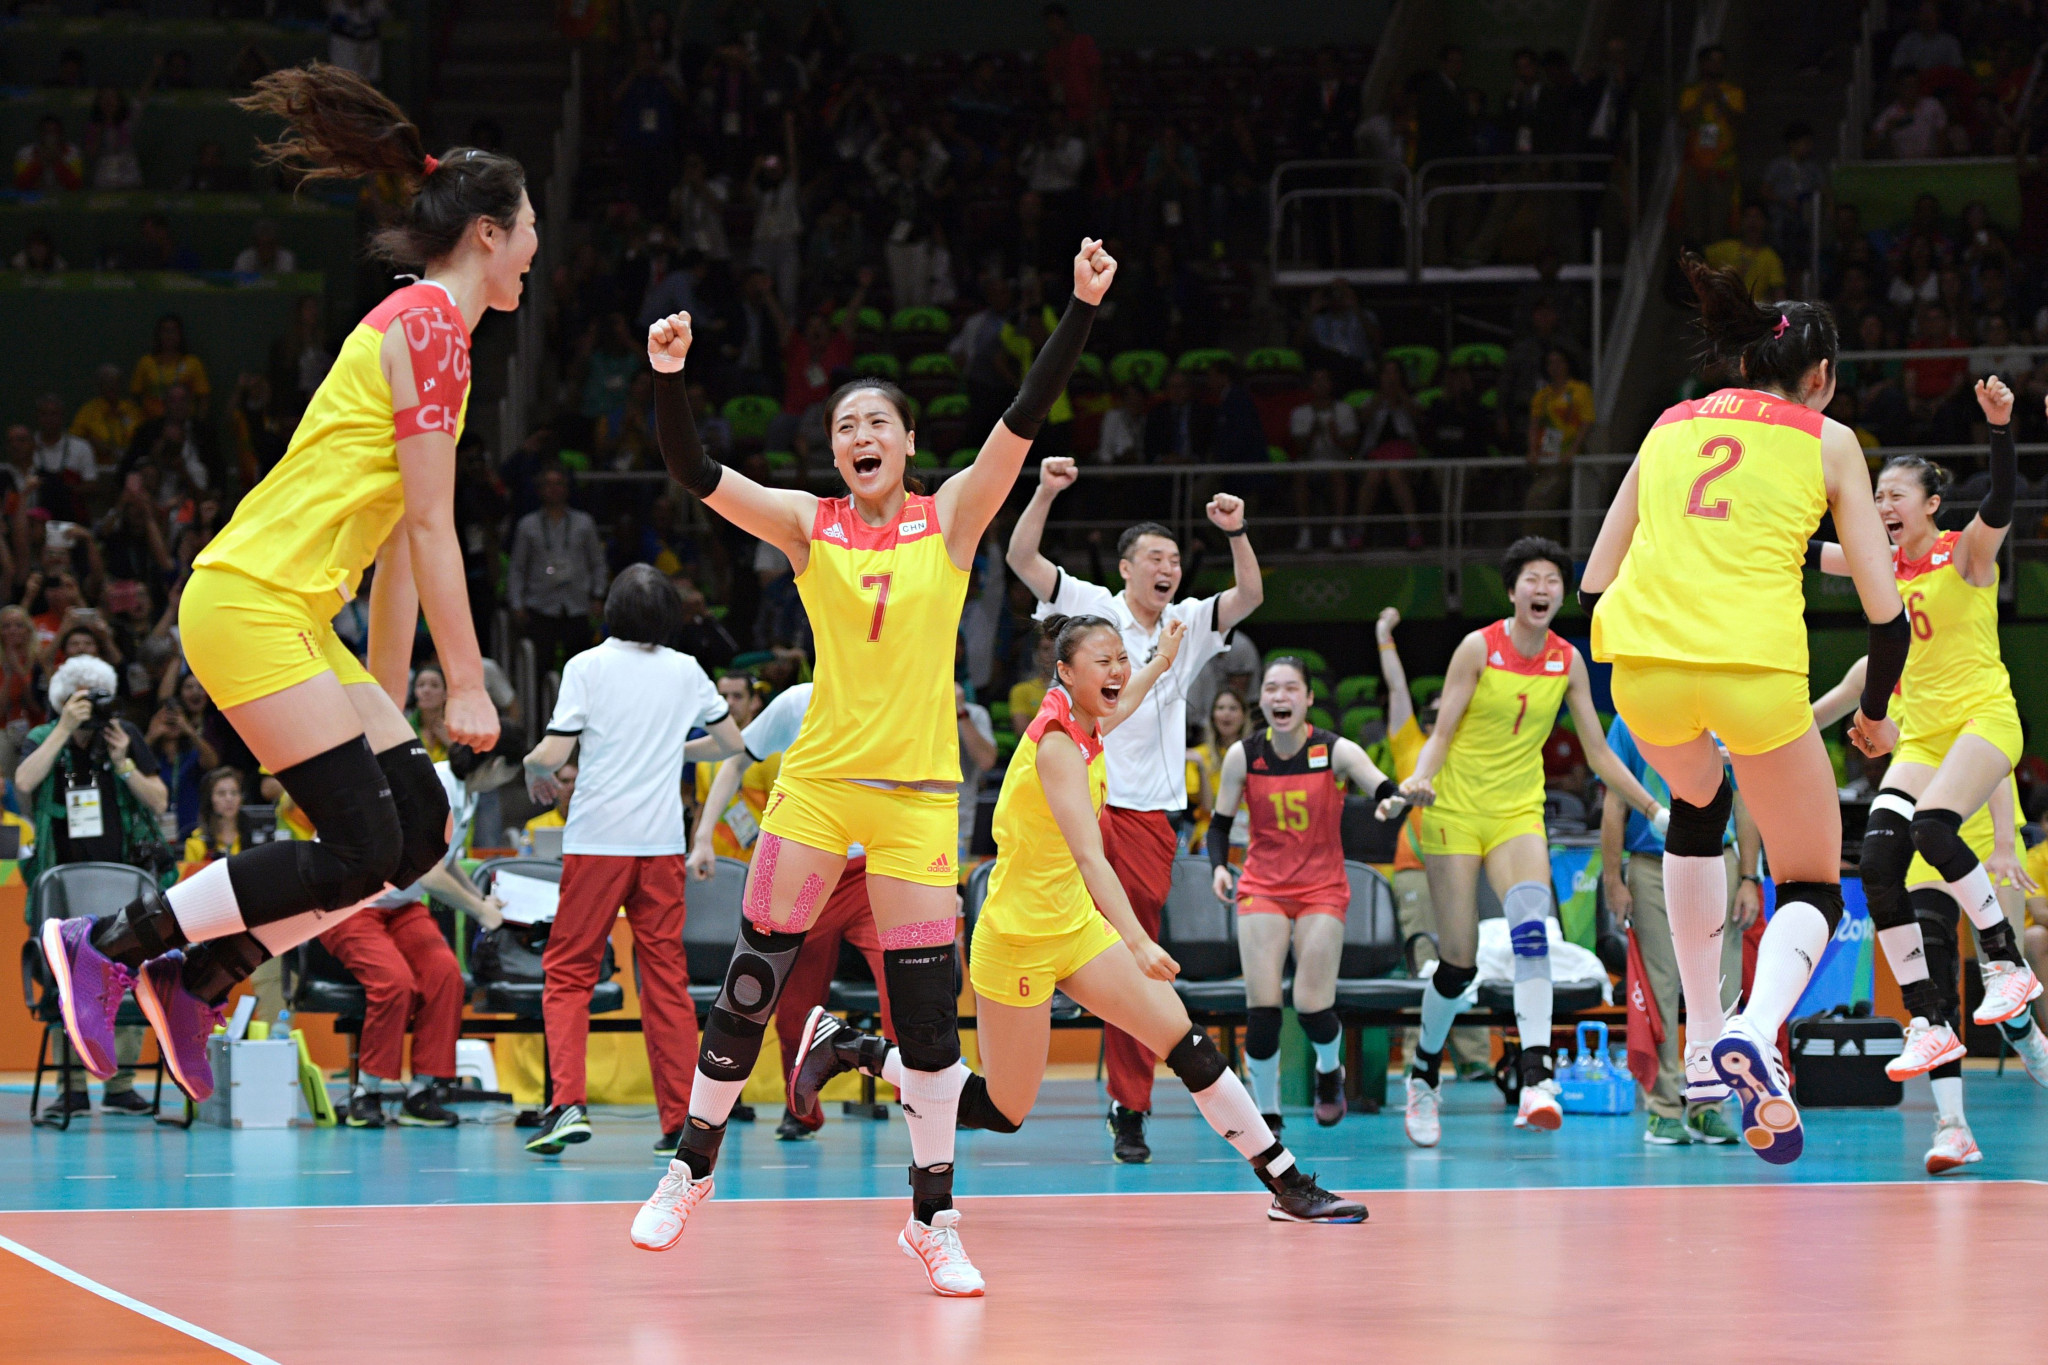 Olympic volleyball tournaments at Tokyo 2020 to end with women's final for first time